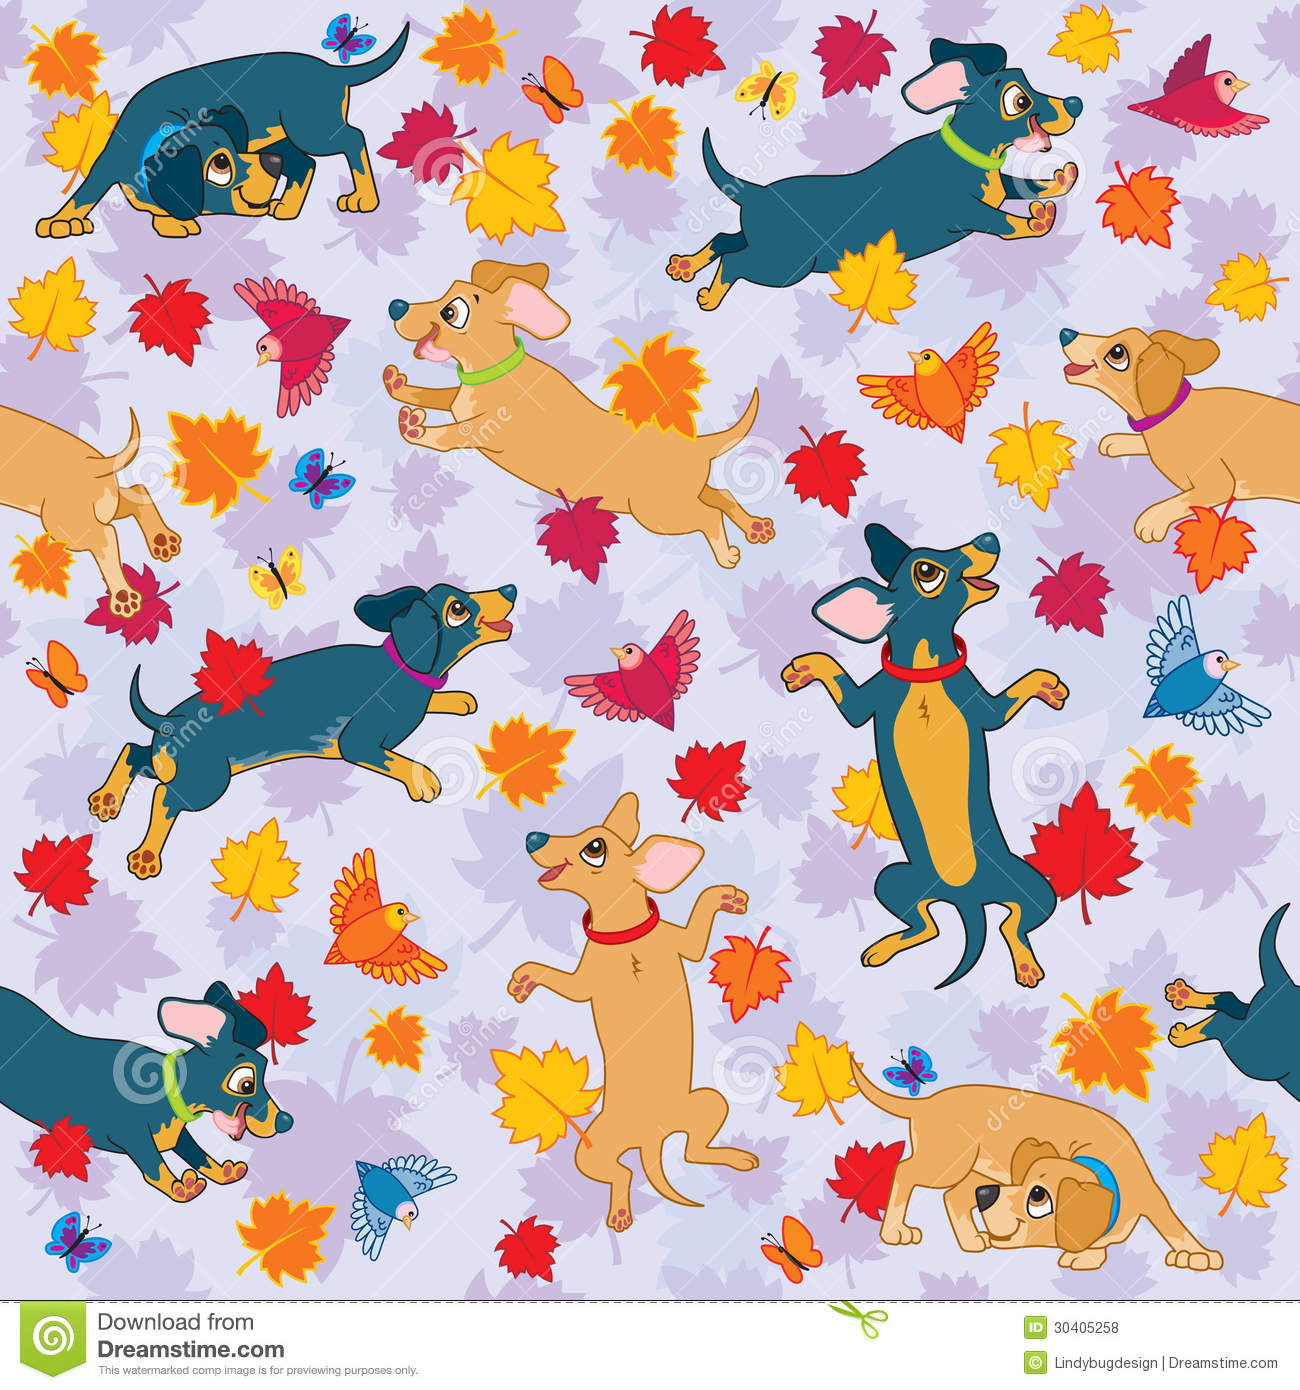 Snoopy Fall Wallpaper Sausage Dogs Love Fall Wallpaper Pattern Stock Vector